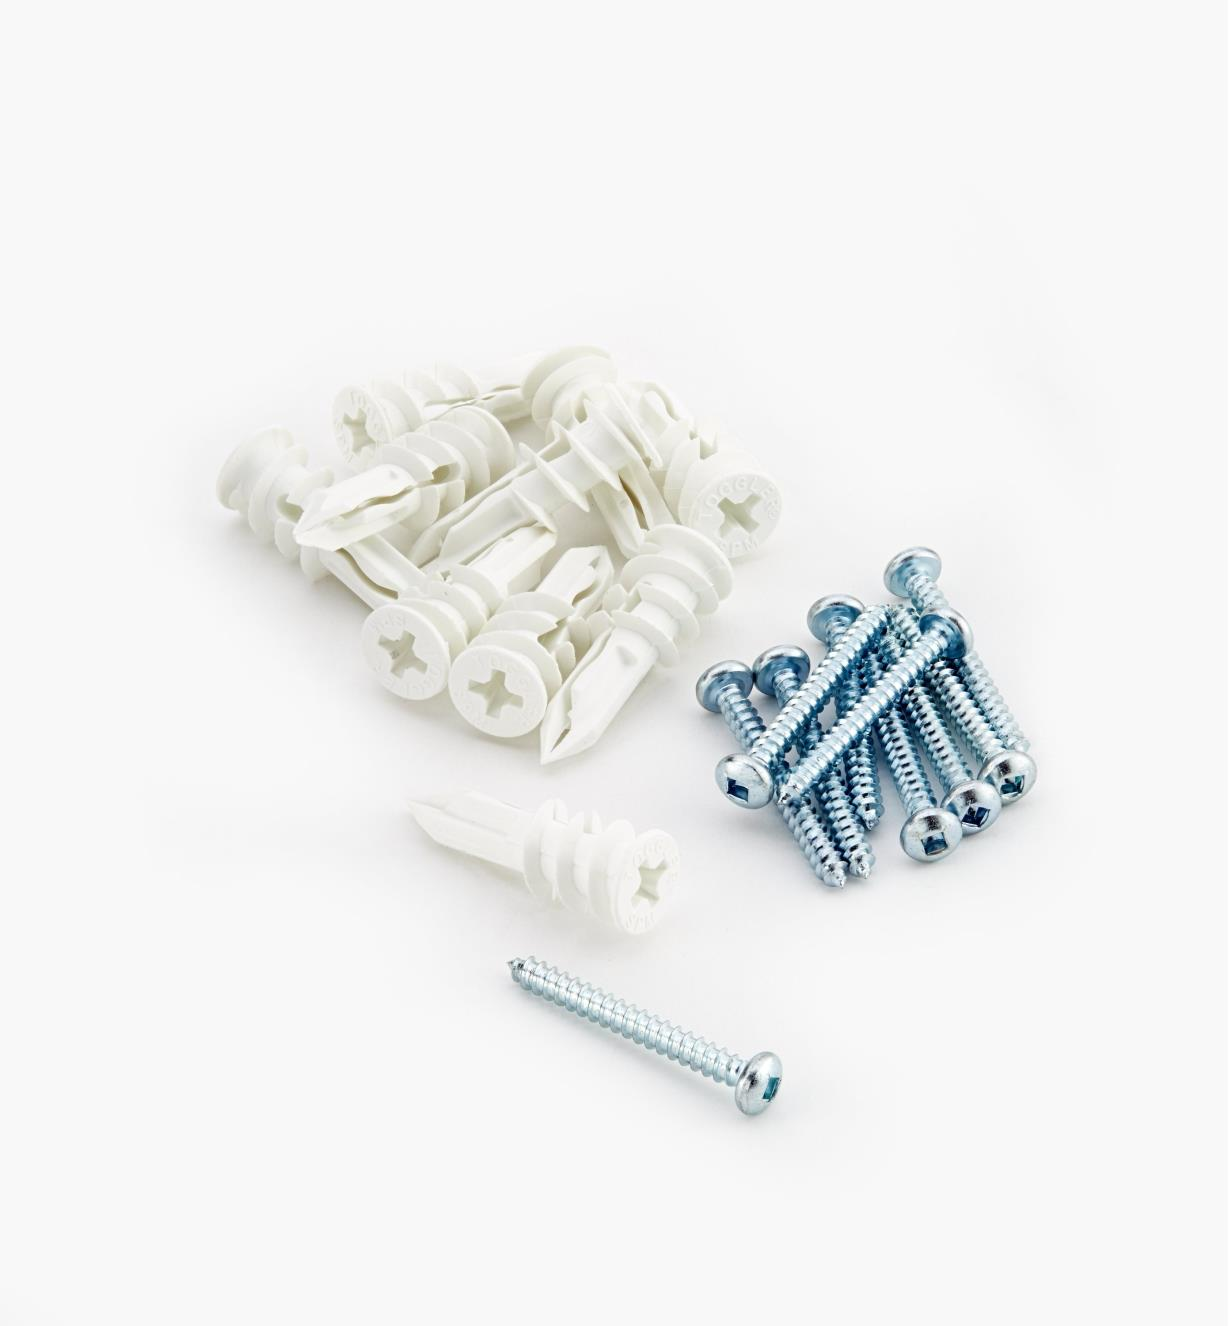 00F1775 - Toggler Drywall Anchors & Screws, pkg. of 10